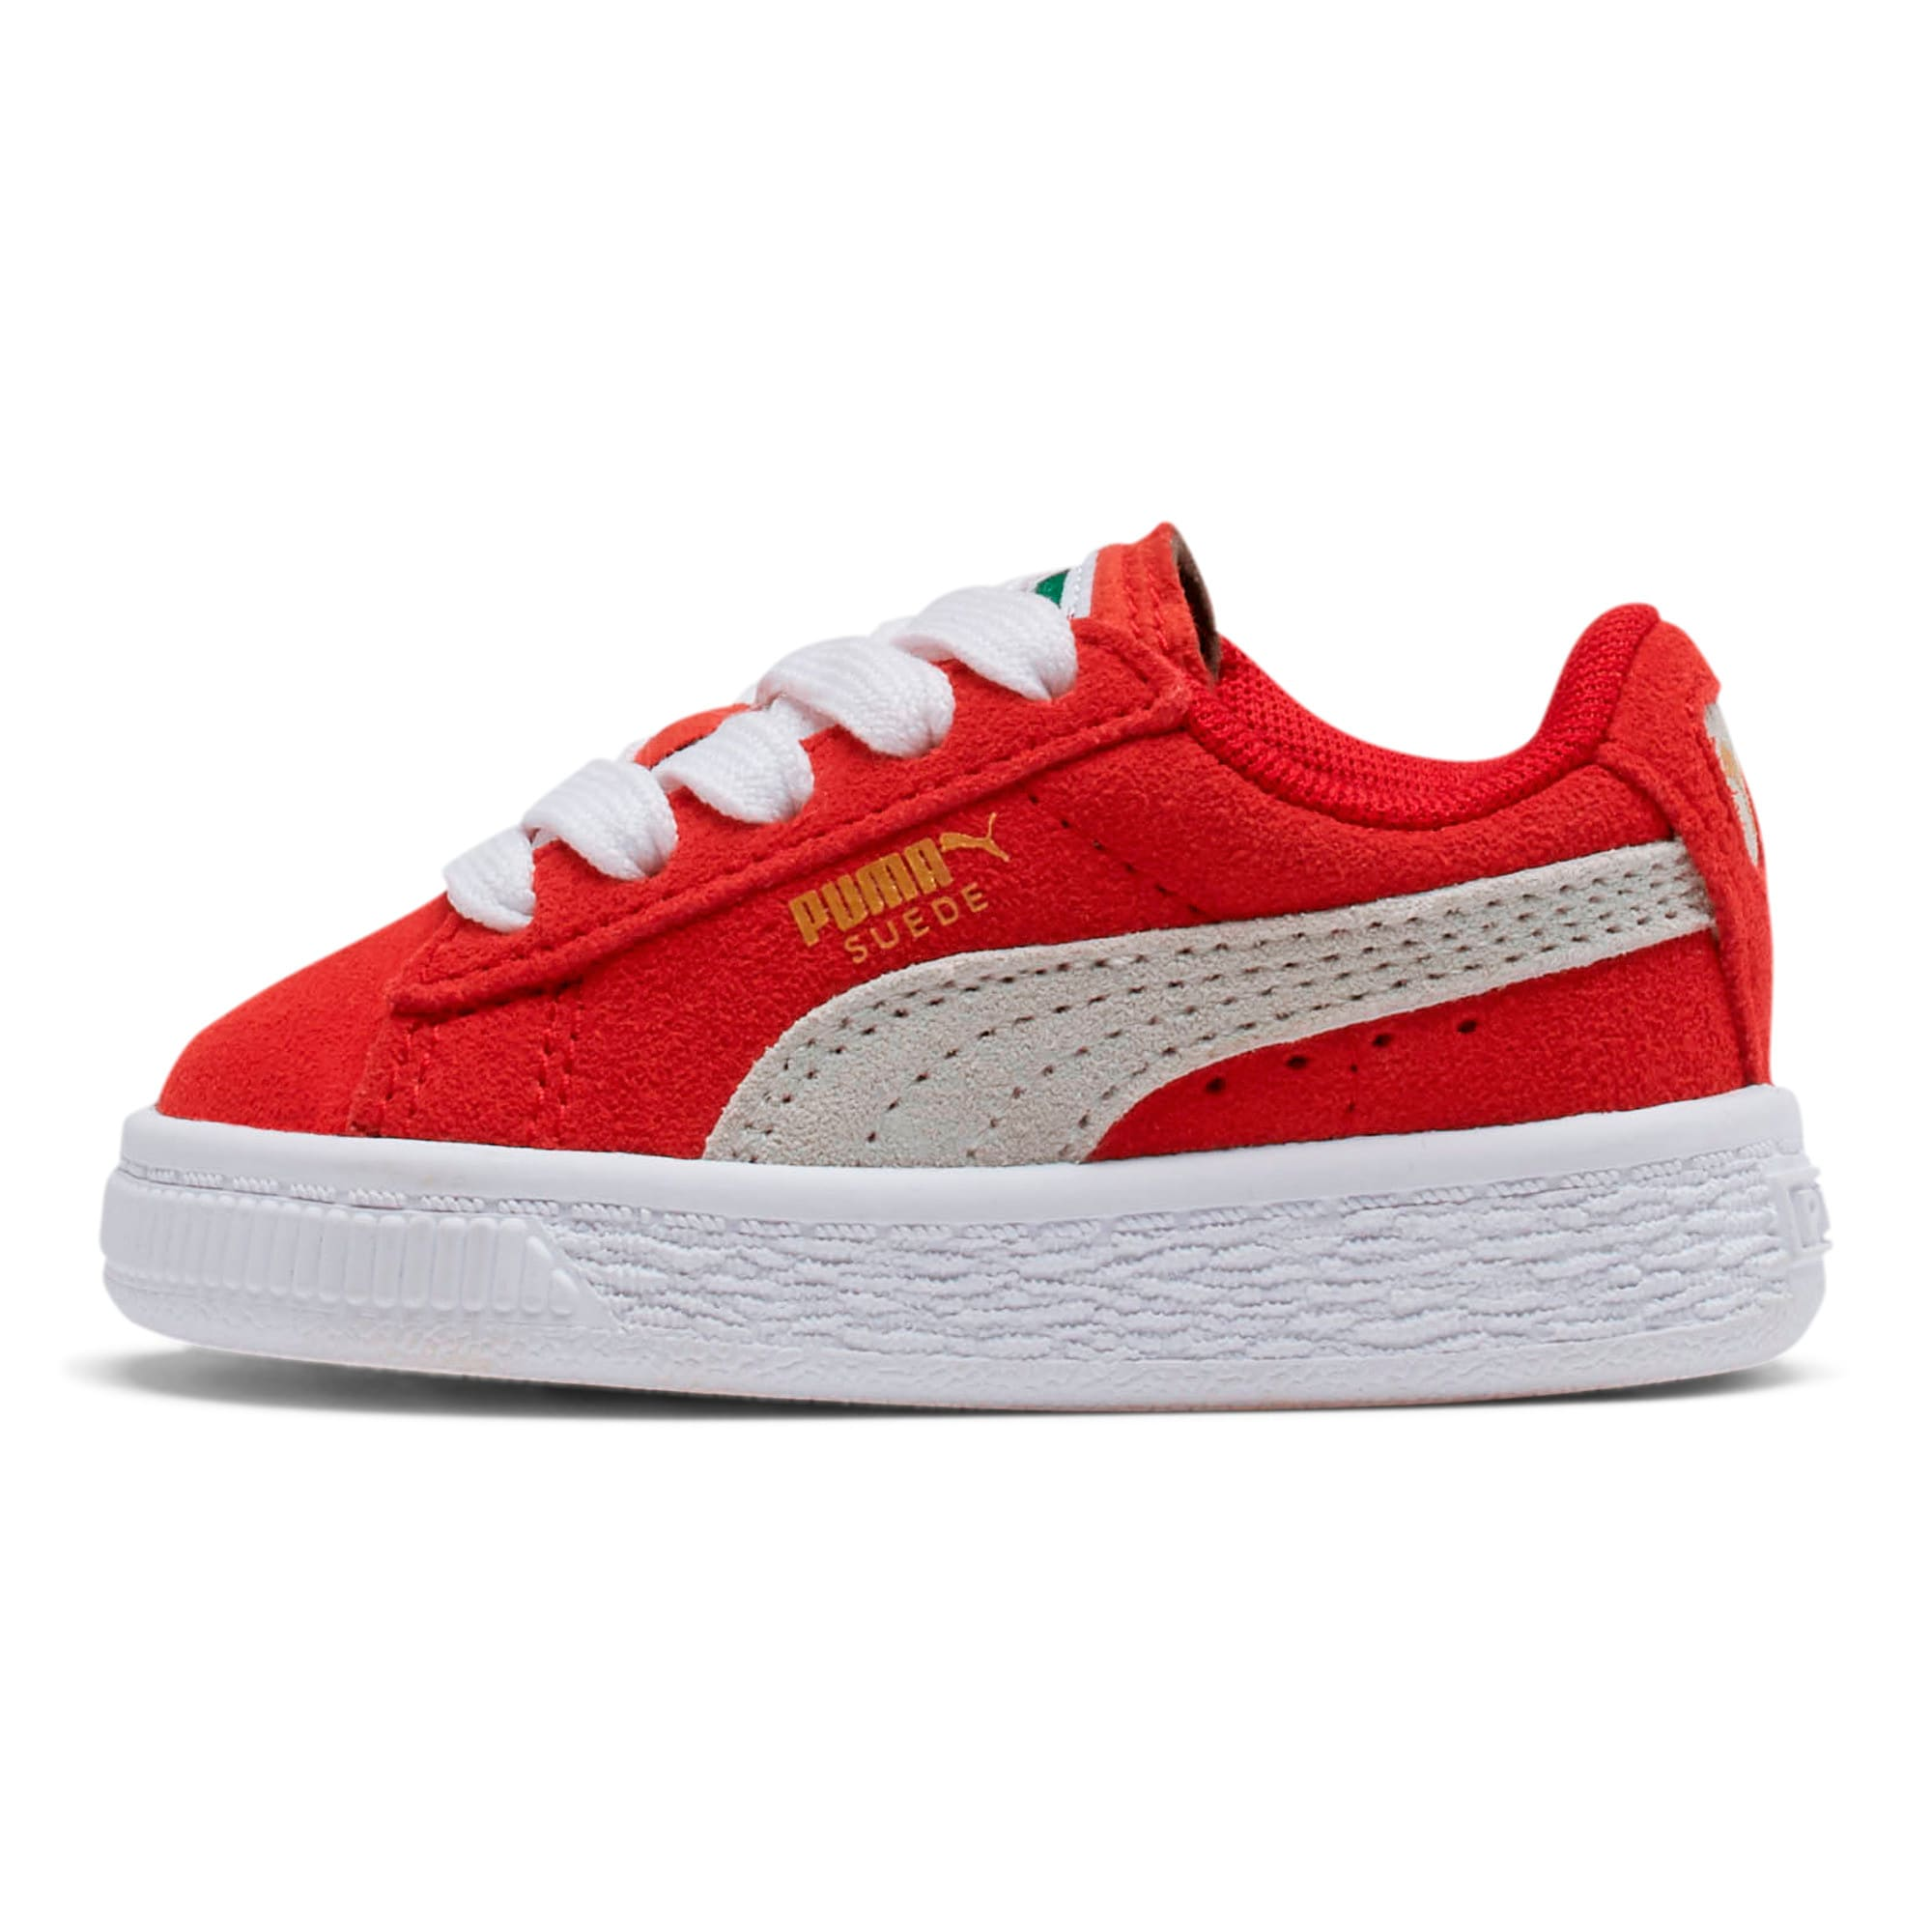 Miniatura 1 de Zapatos Puma Suede para bebés, high risk red-white, mediano